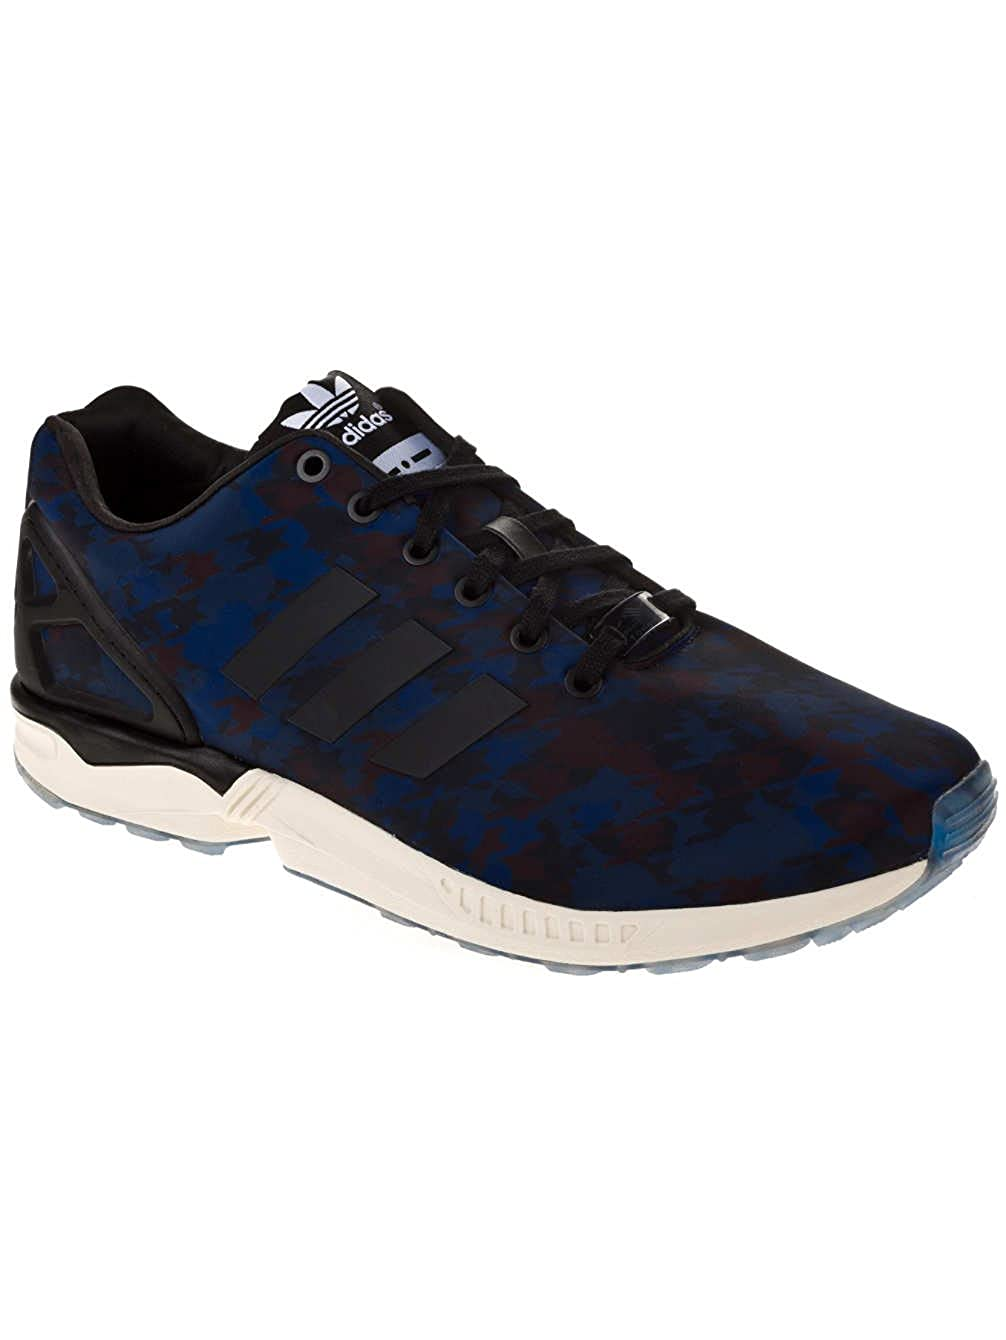 1bdbe04831 Originals ZX Flux, Scarpe da Fitness Uomo | Outlet | Gentiluomo ...